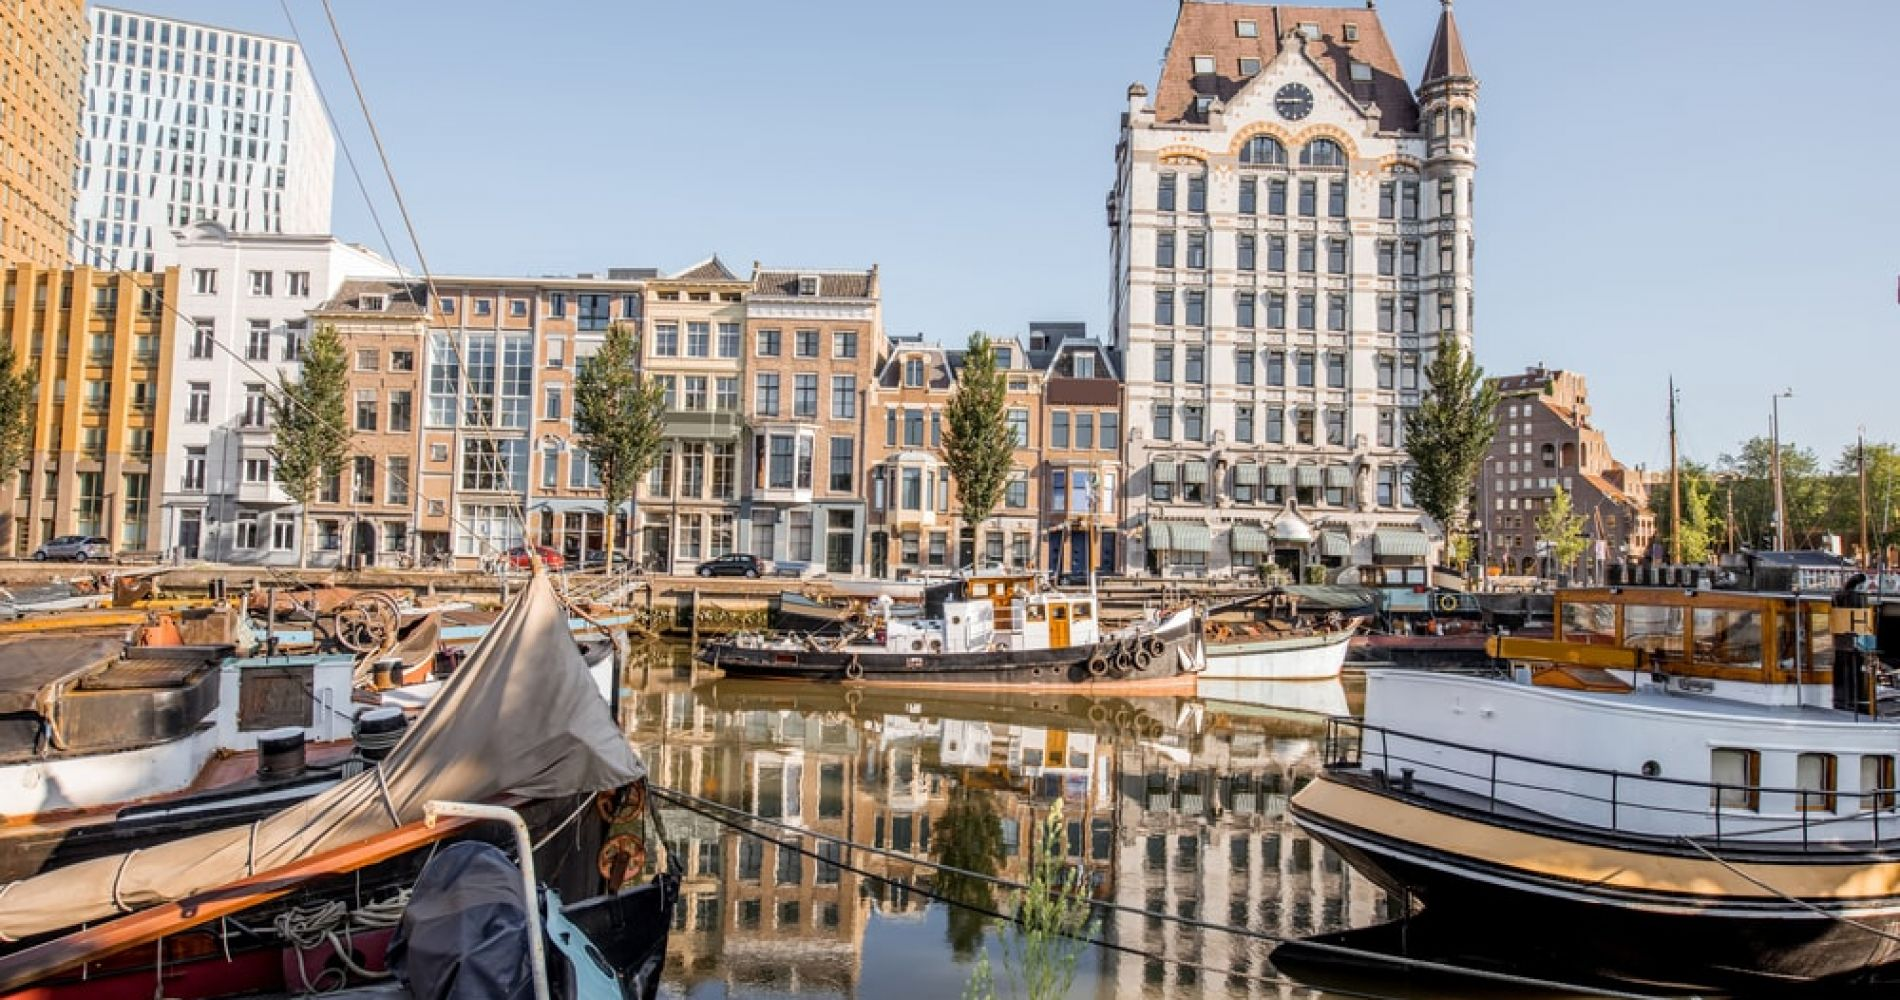 Wander in the Old Harbour of Rotterdam